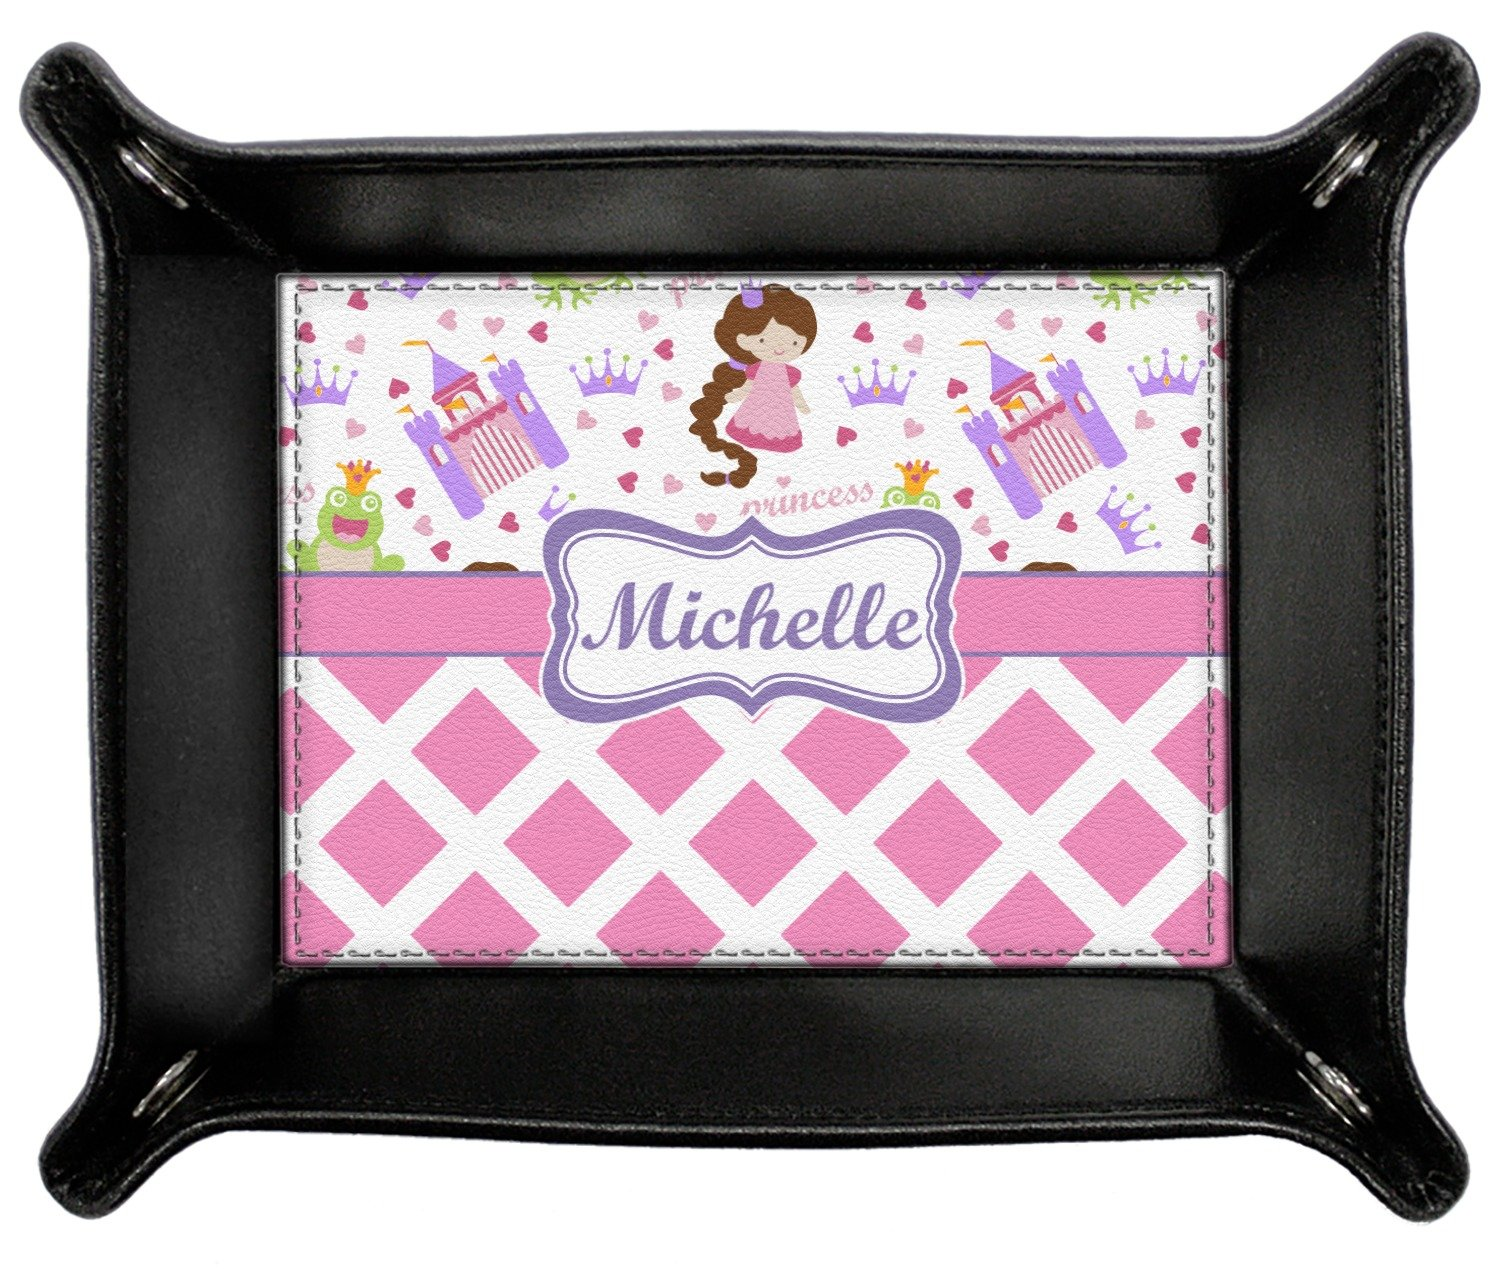 Princess & Diamond Print Genuine Leather Valet Tray (Personalized)